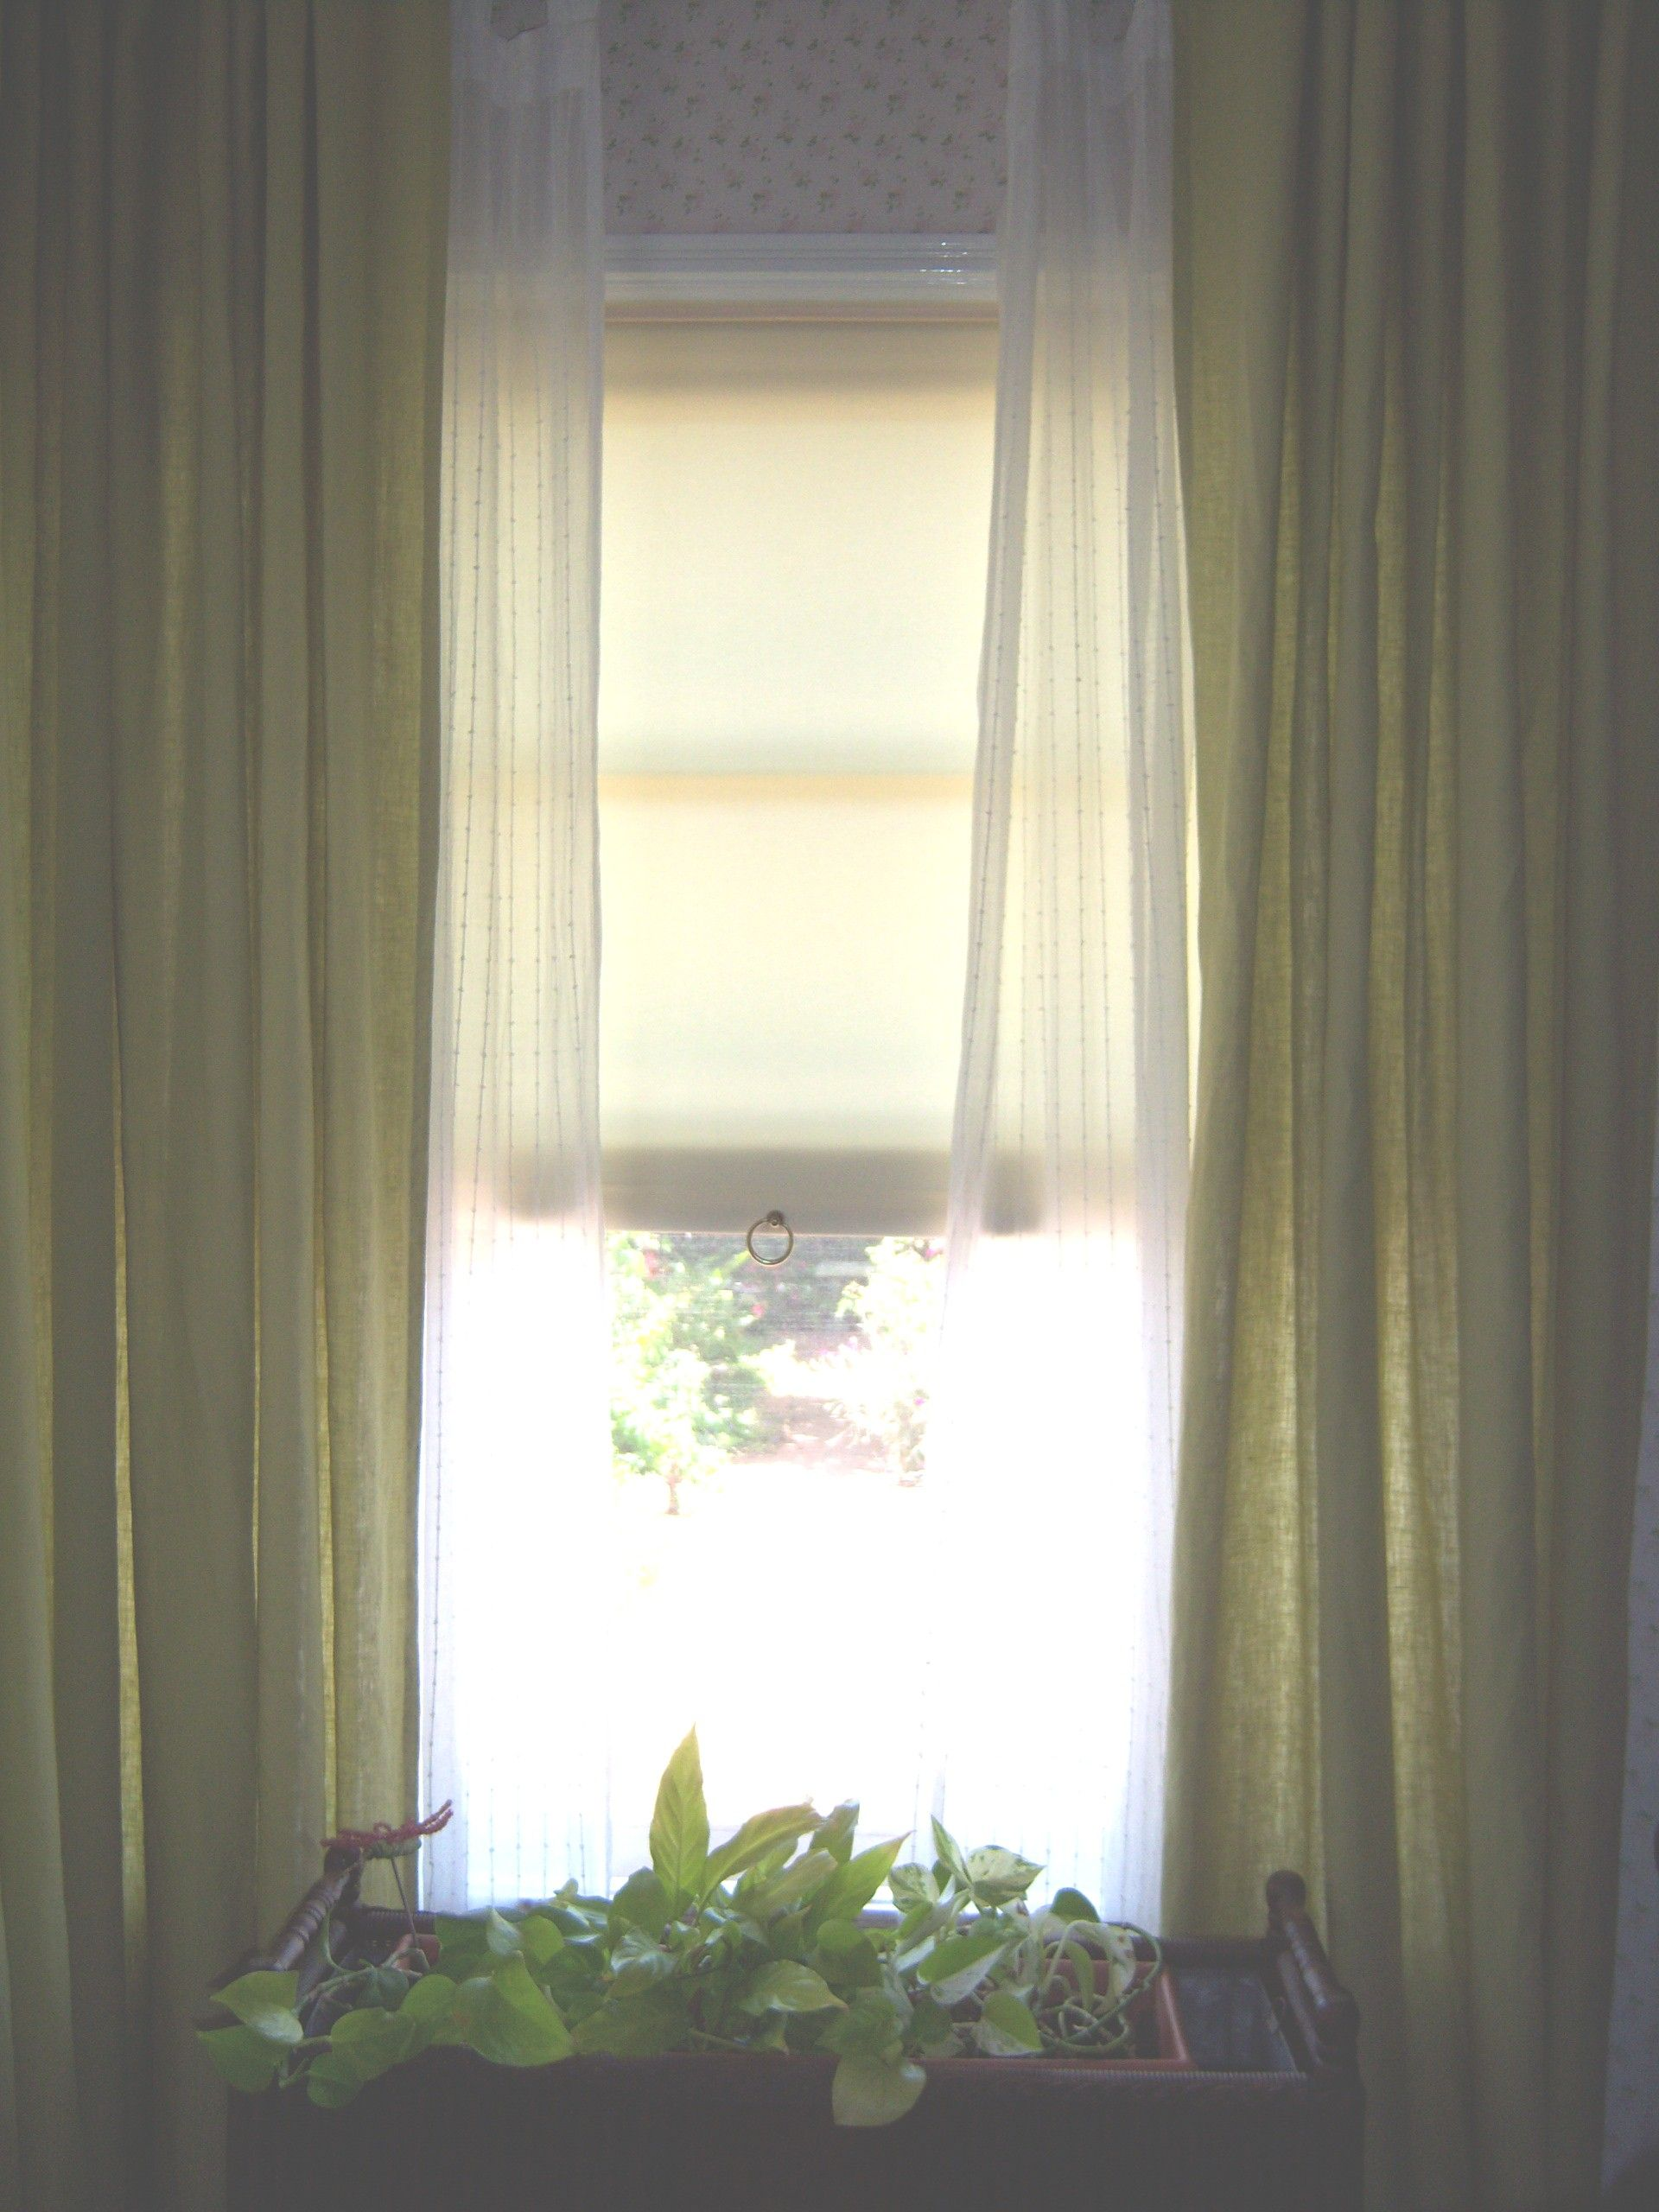 How to fix springs in roller shades and adjust spring tension - Cotton Spring Roller Shade